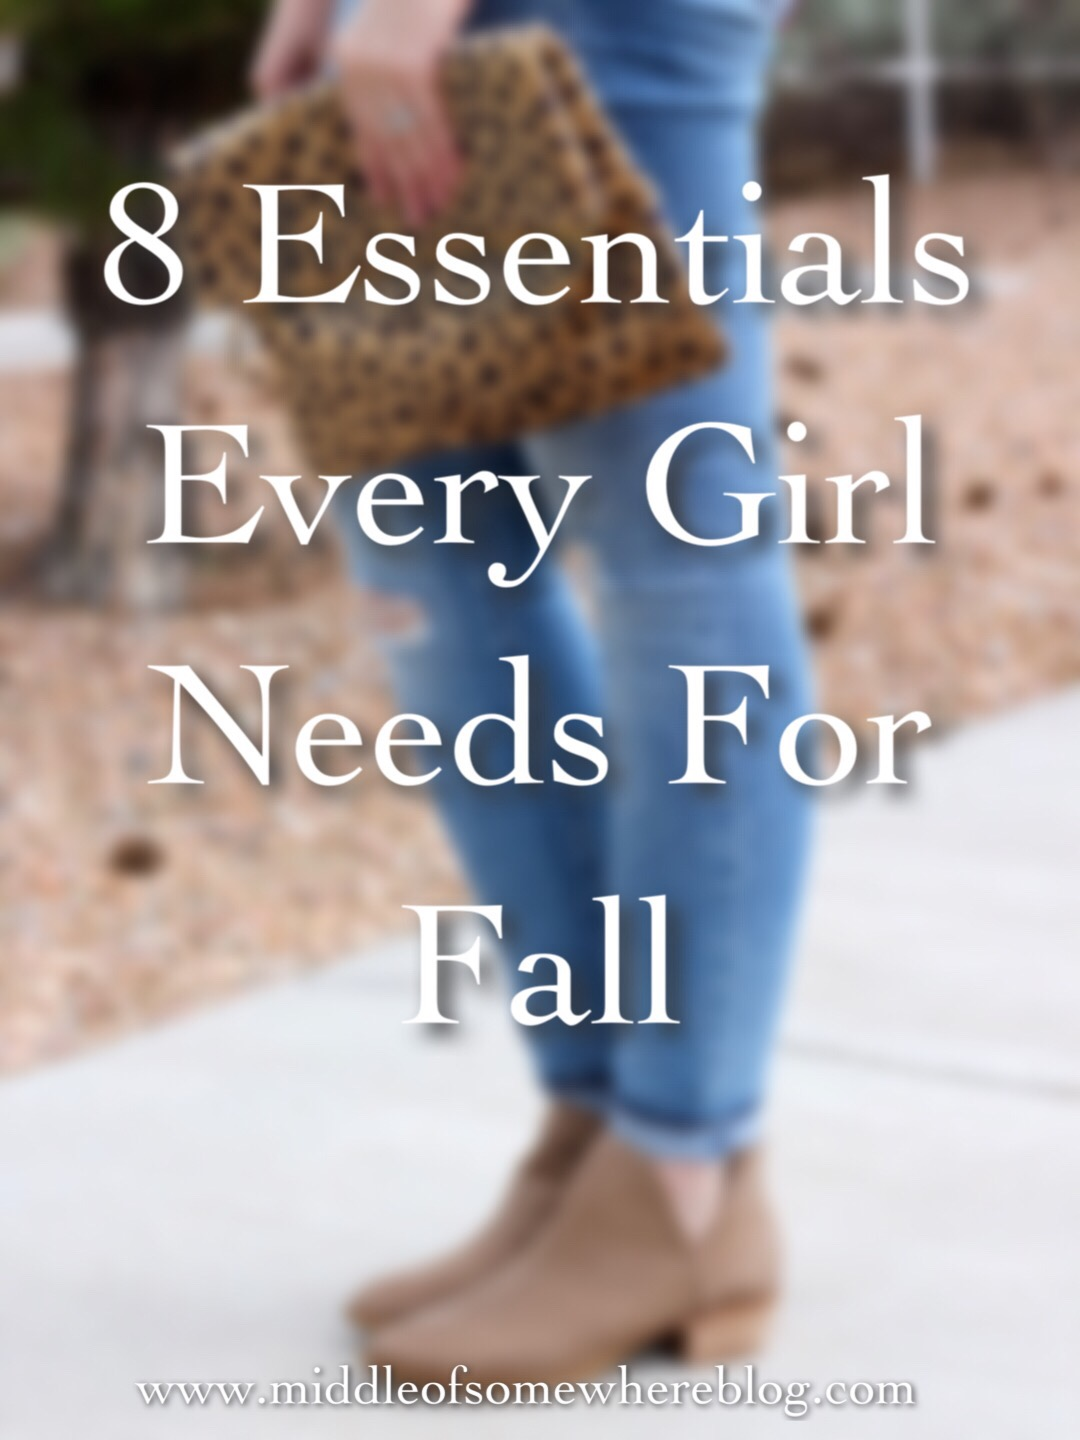 8 essentials every girl needs for fall